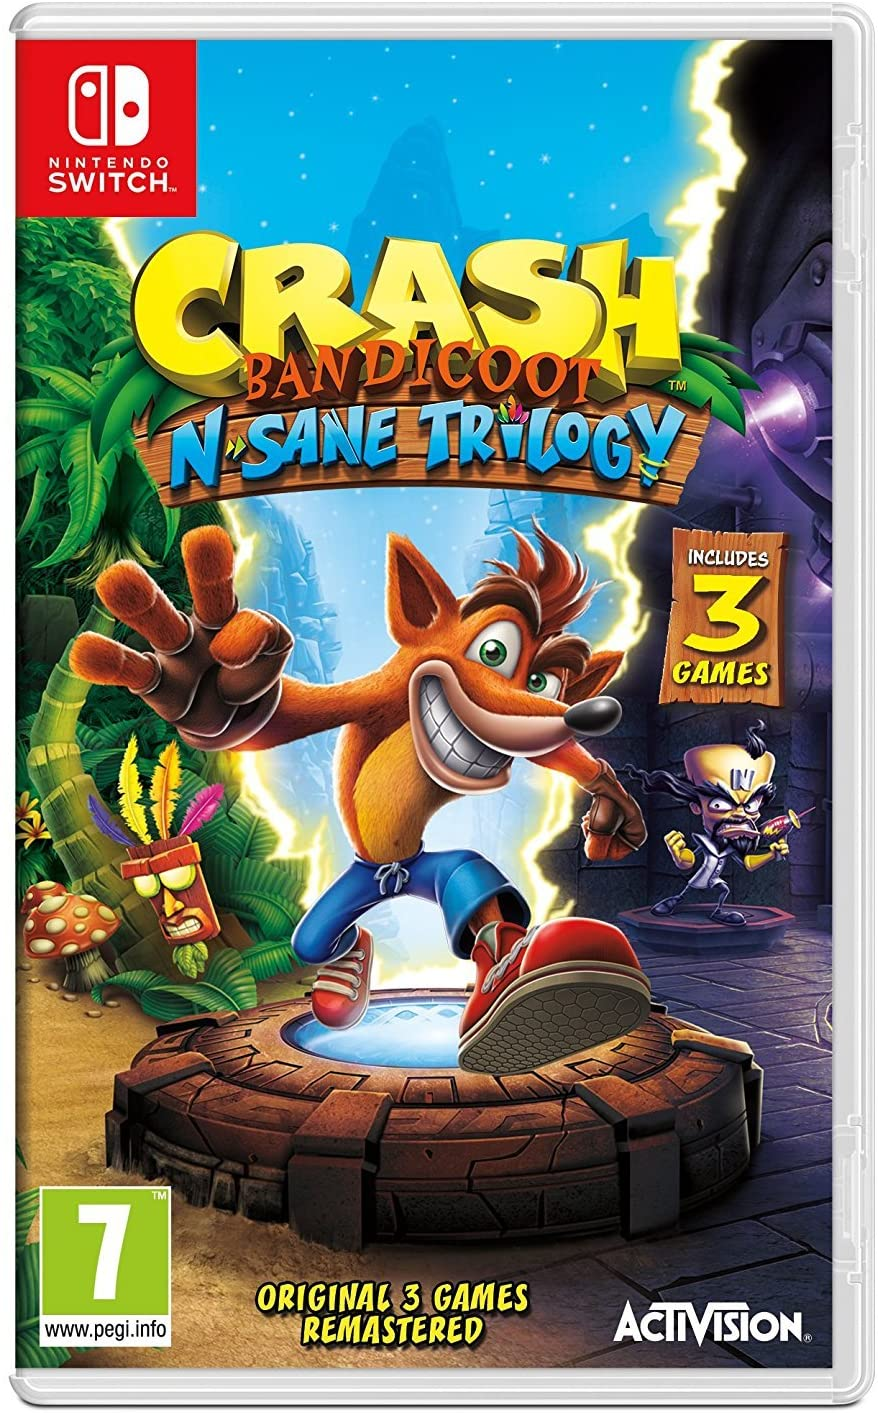 CRASH BANDICOOT N SANE TRILOGY (NINTENDOSWITCH)